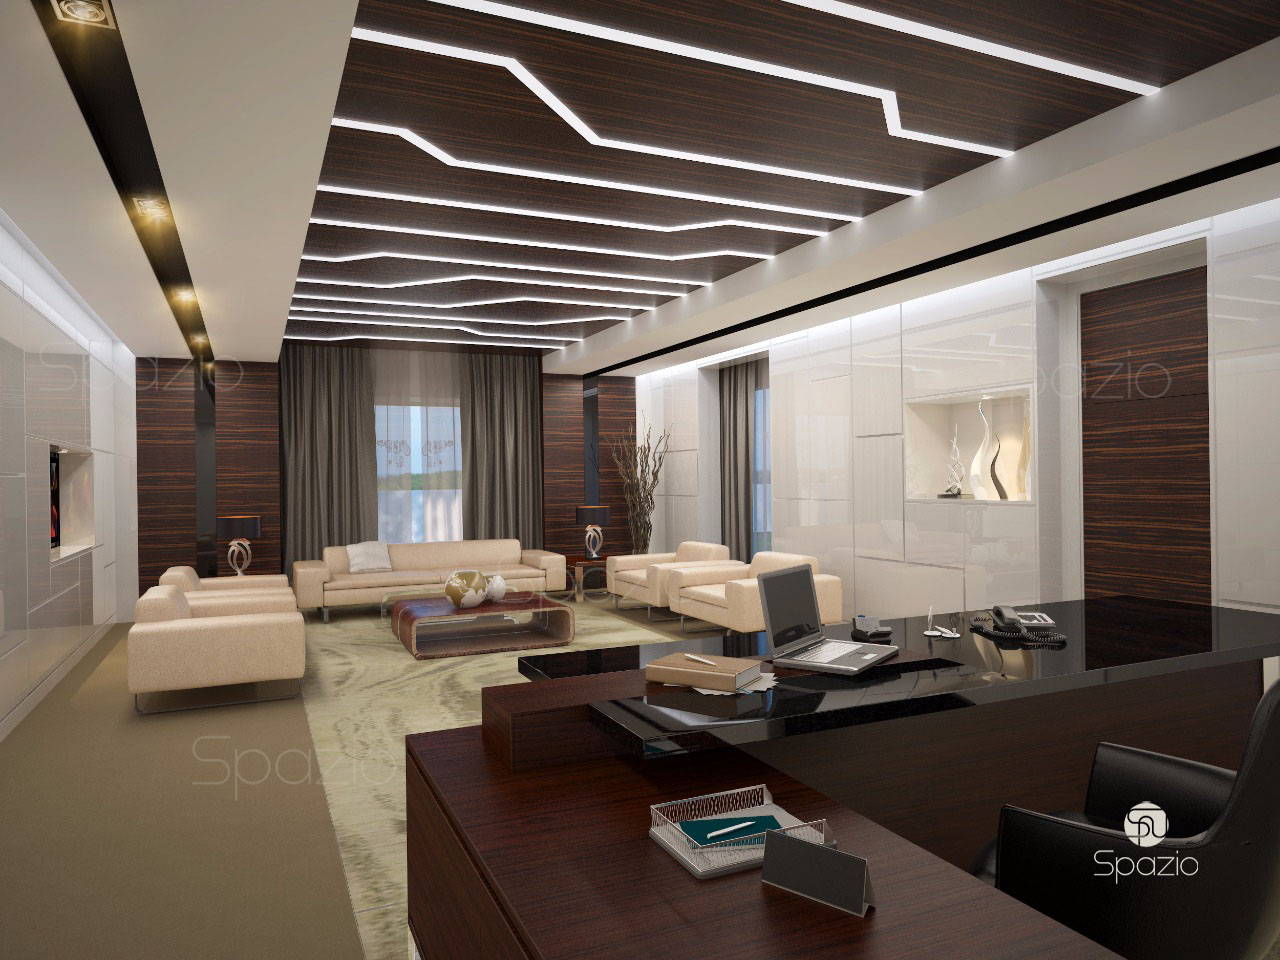 Office interior design company in dubai spazio for Office design companies